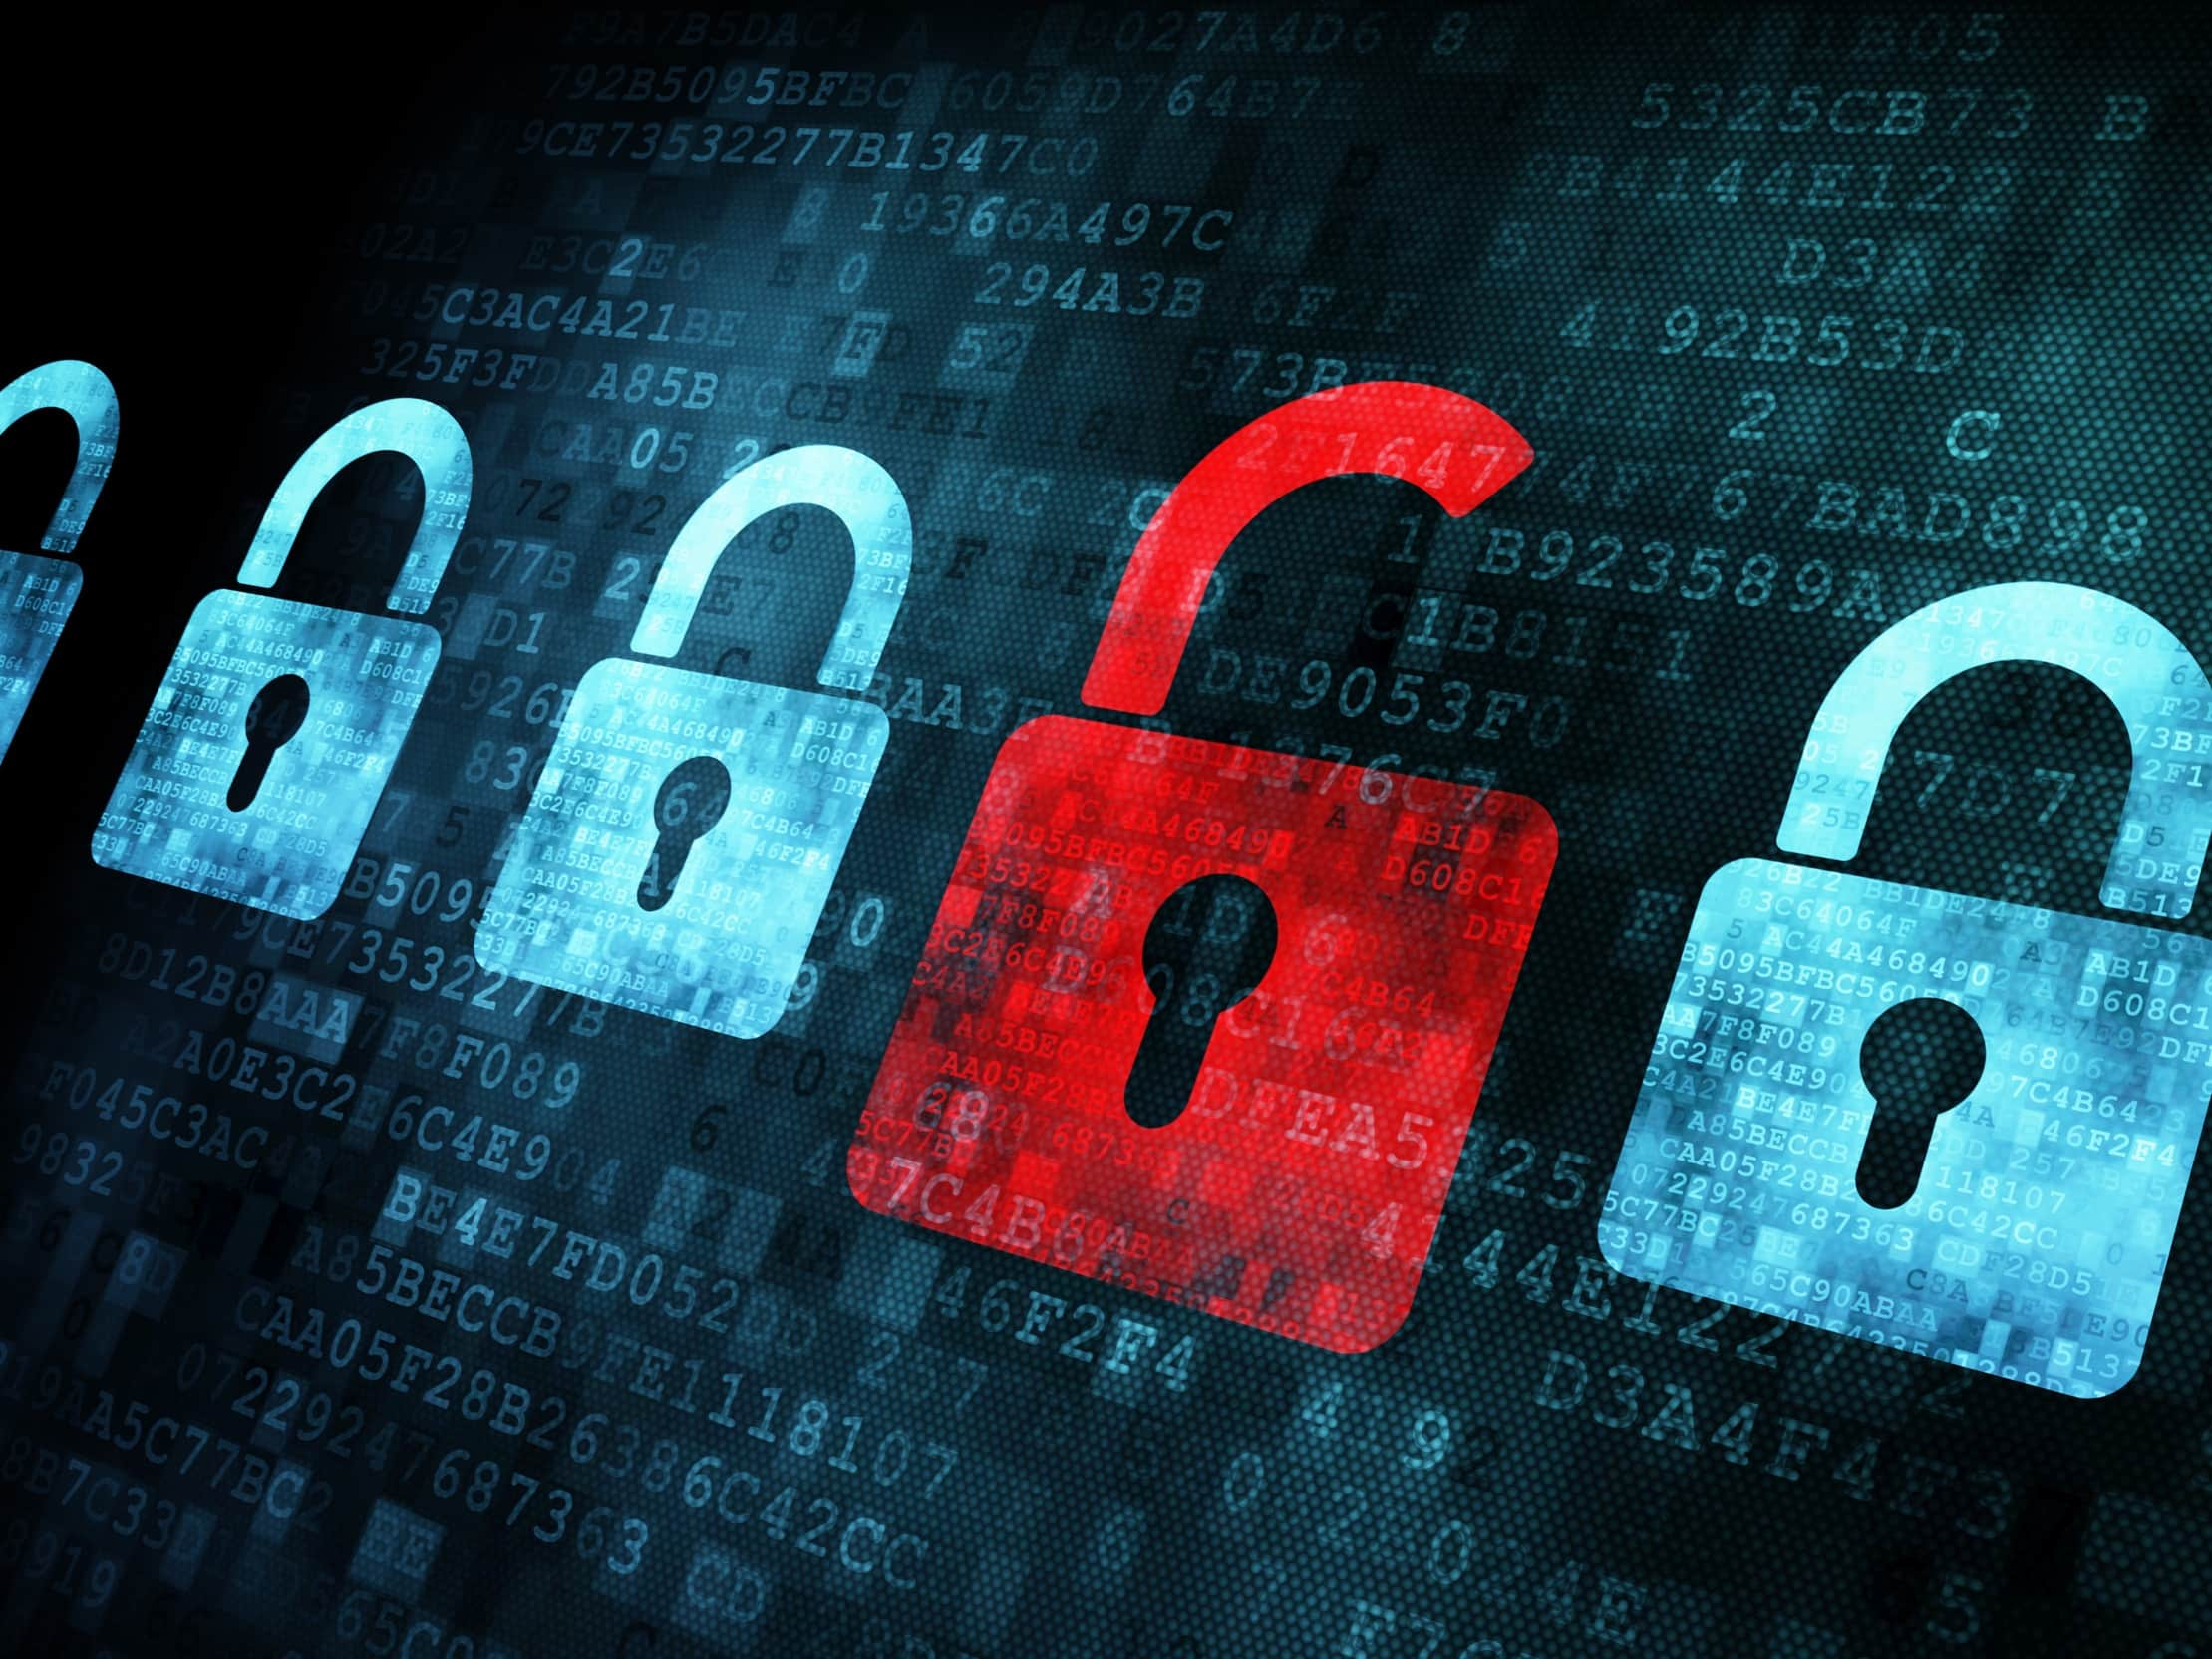 content/en-global/images/repository/isc/types-of-cybercrimes-tips.jpg